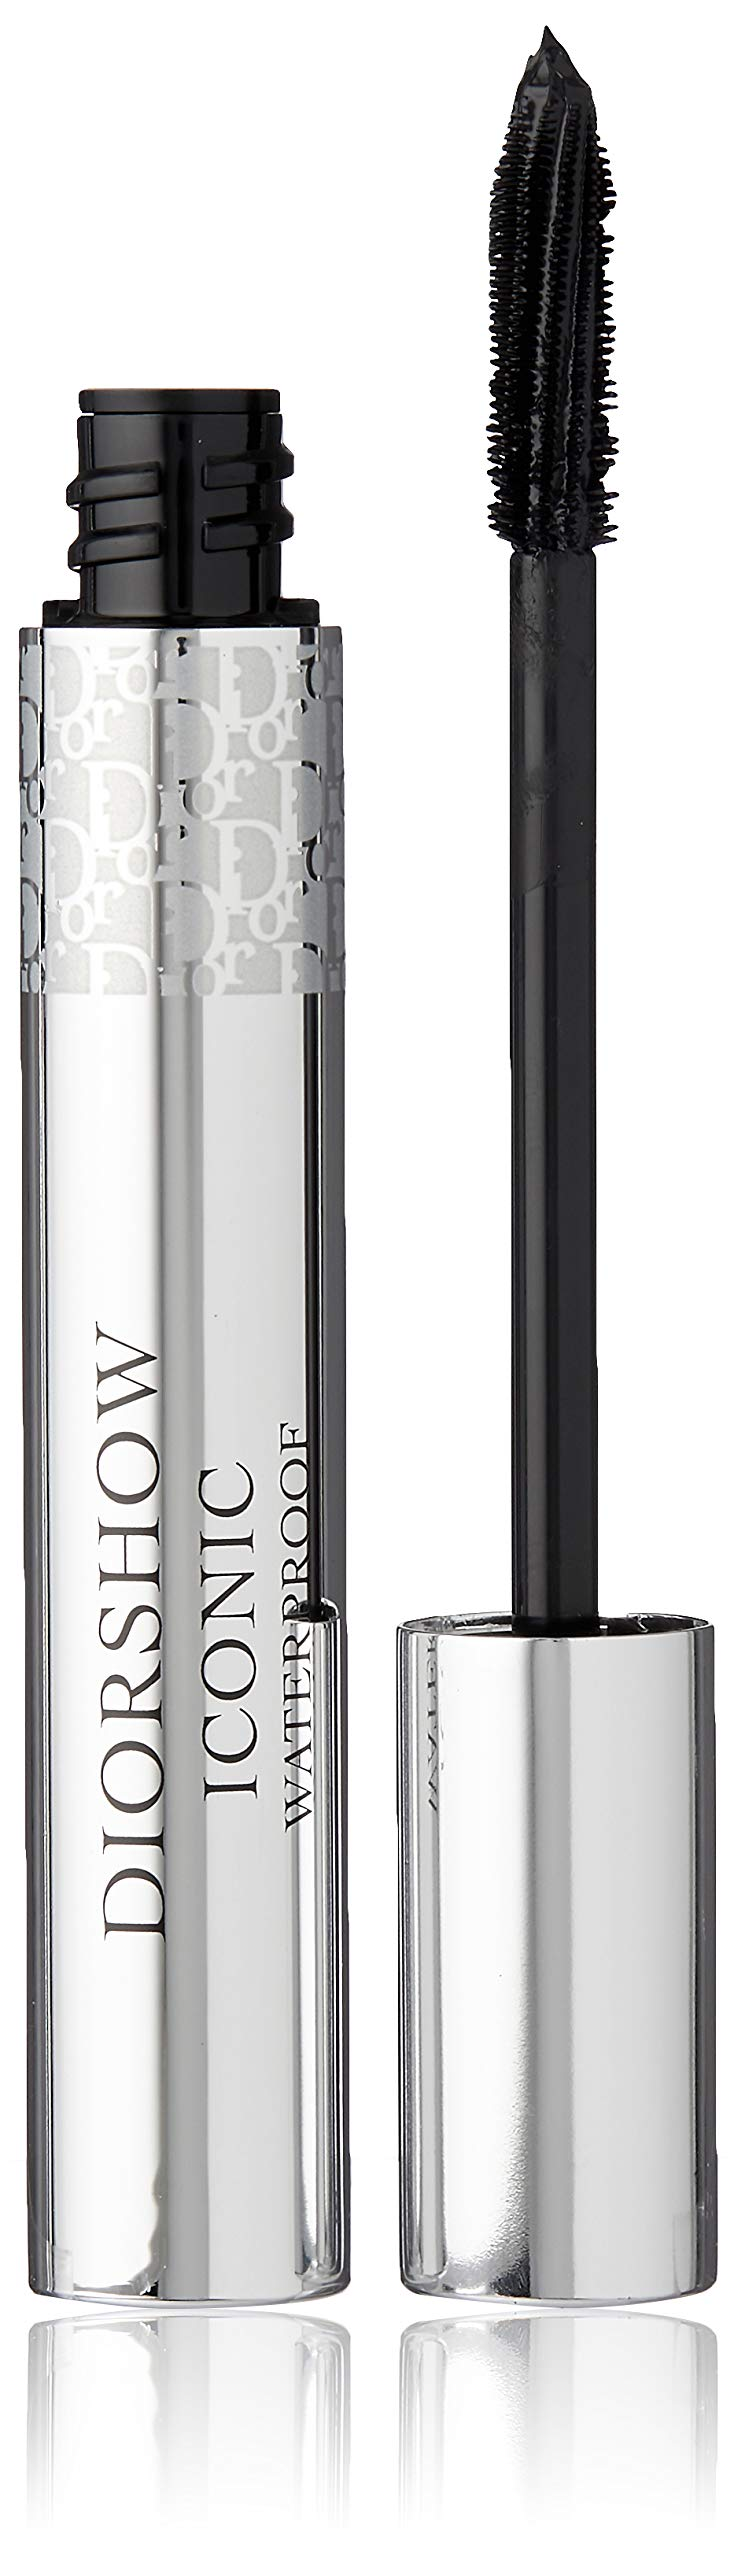 Christian Dior Diorshow Iconic Waterproof Mascara -- Extreme Wear High Intensity Lash Curler -- #090 Extreme Black 0.27 oz by Dior